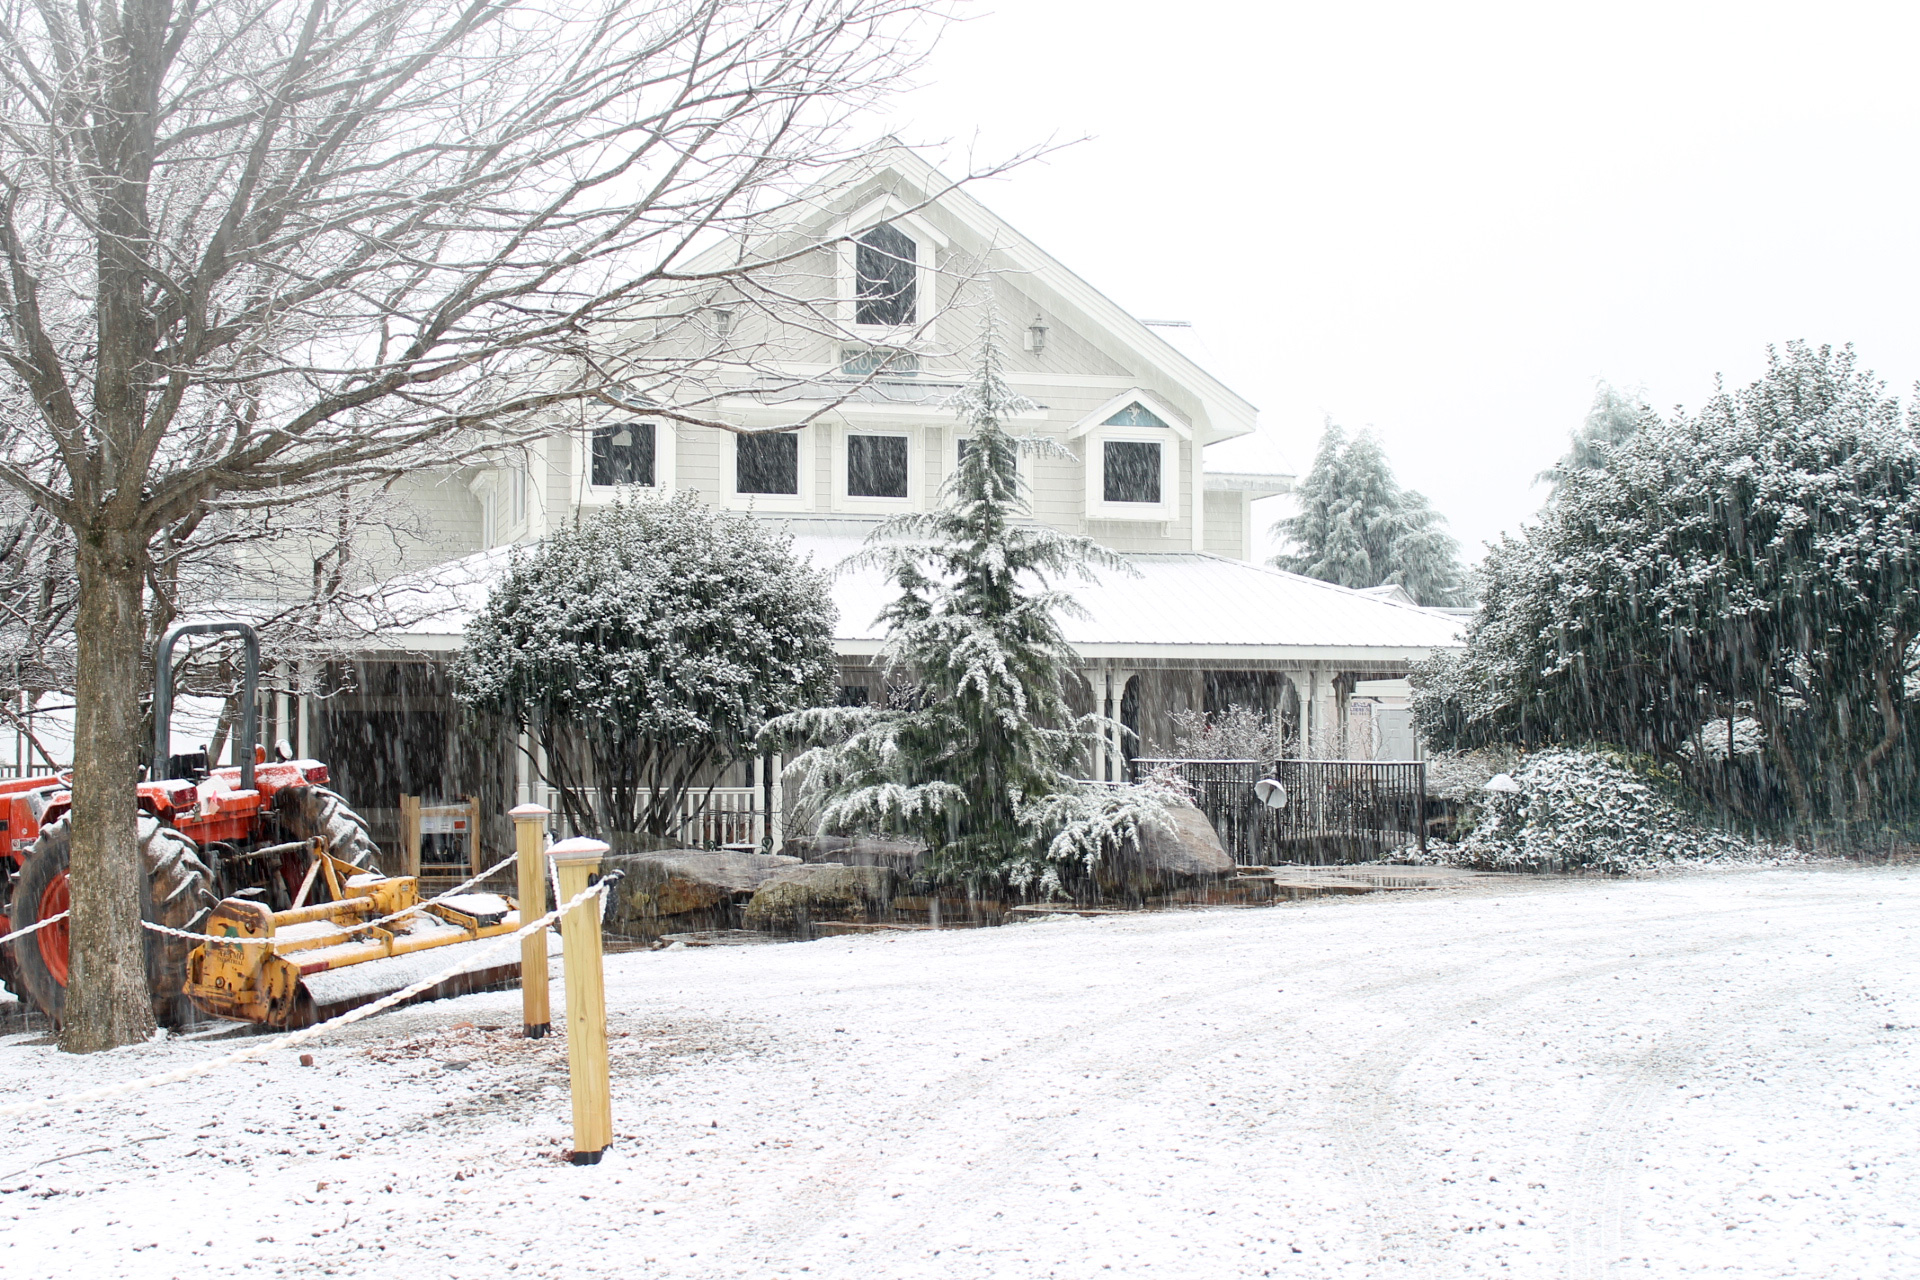 Frogtown Vineyard and Winery Covered in Snow